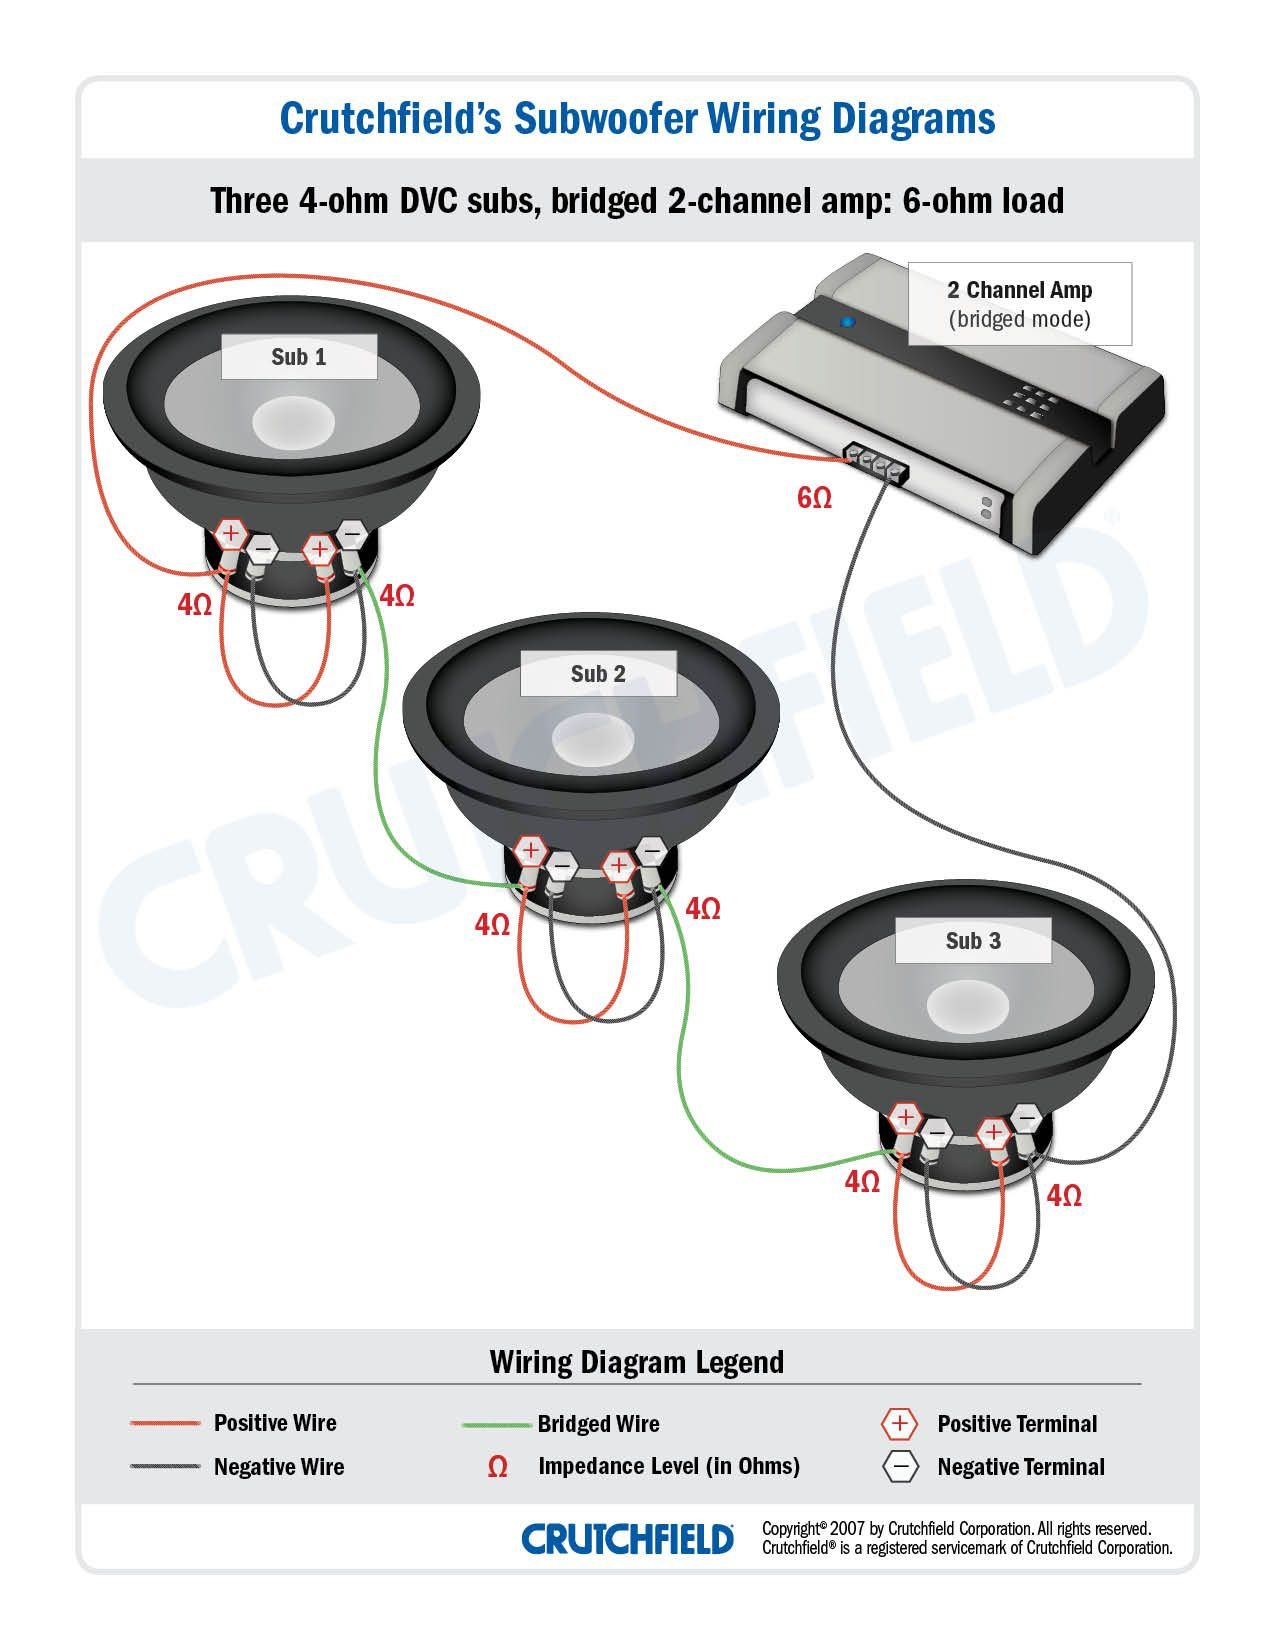 7a8a8865410c95e8f51e7b09390b7c36 top 10 subwoofer wiring diagram free download 3 dvc 4 ohm 2 ch top dvc speaker wiring diagrams at readyjetset.co